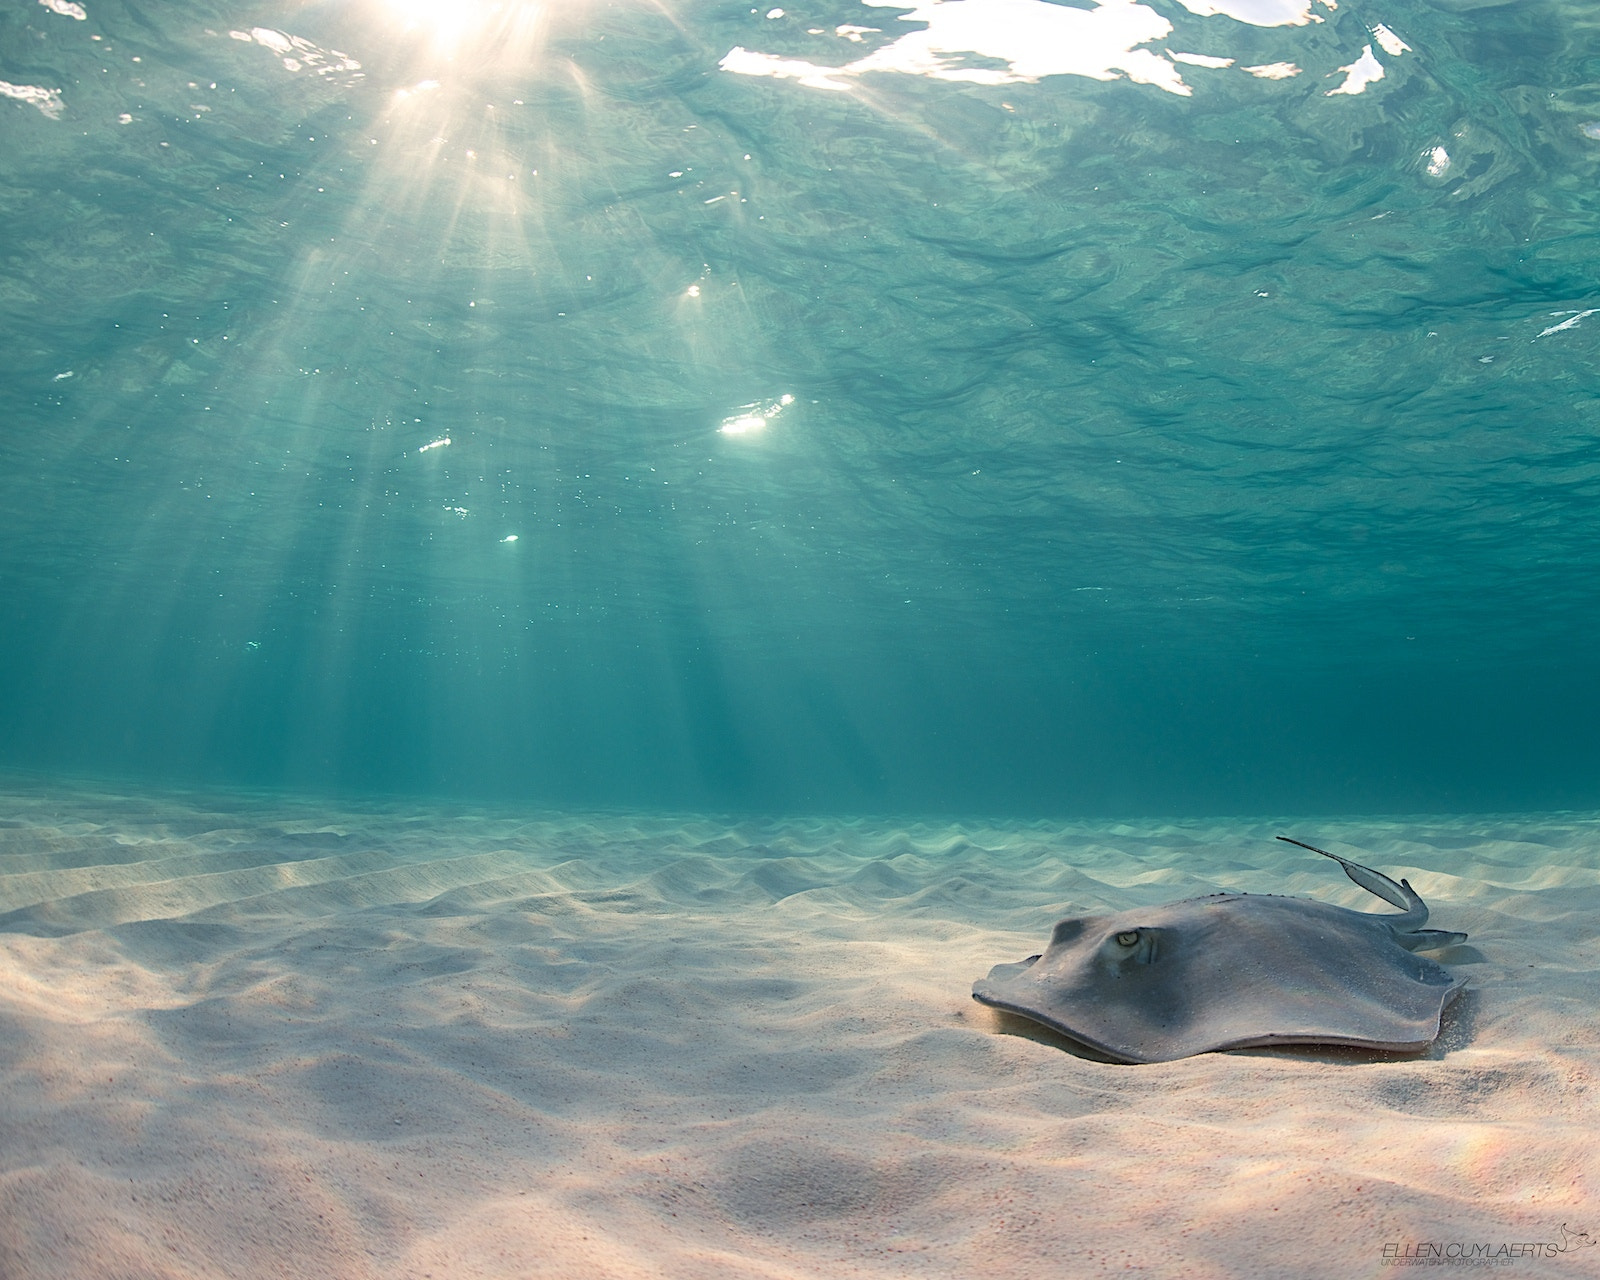 Photograph Rays of light! by Ellen Cuylaerts on 500px